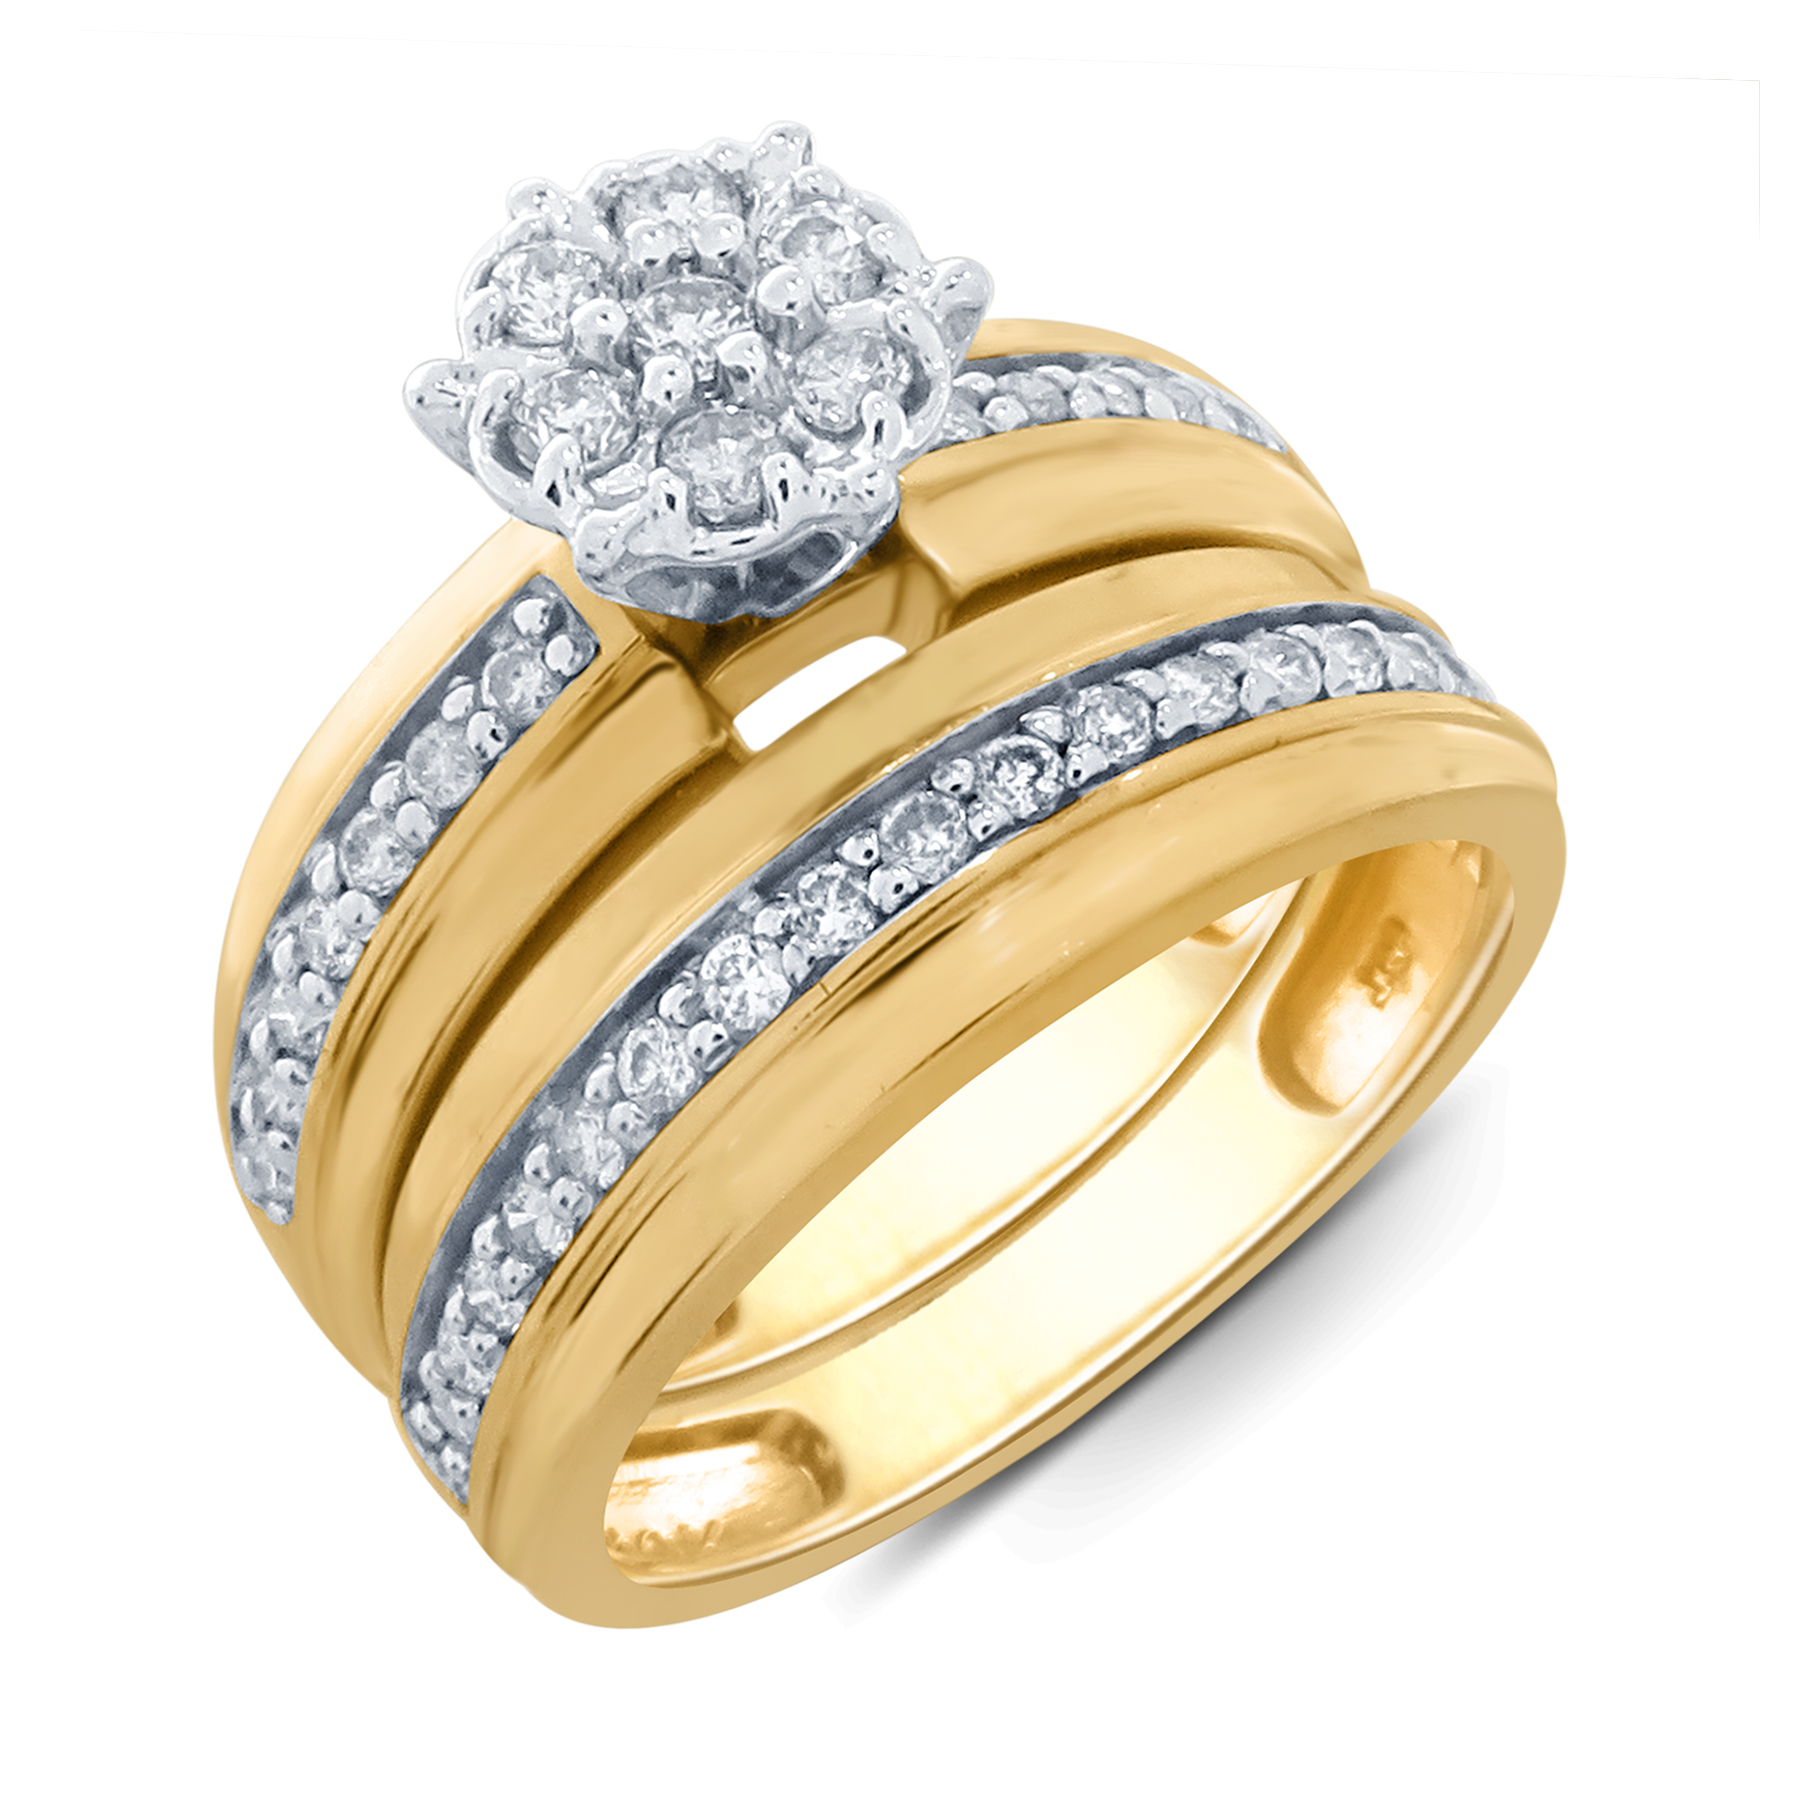 Tradition Diamond 10K Yellow Gold 12 CTTW Certified